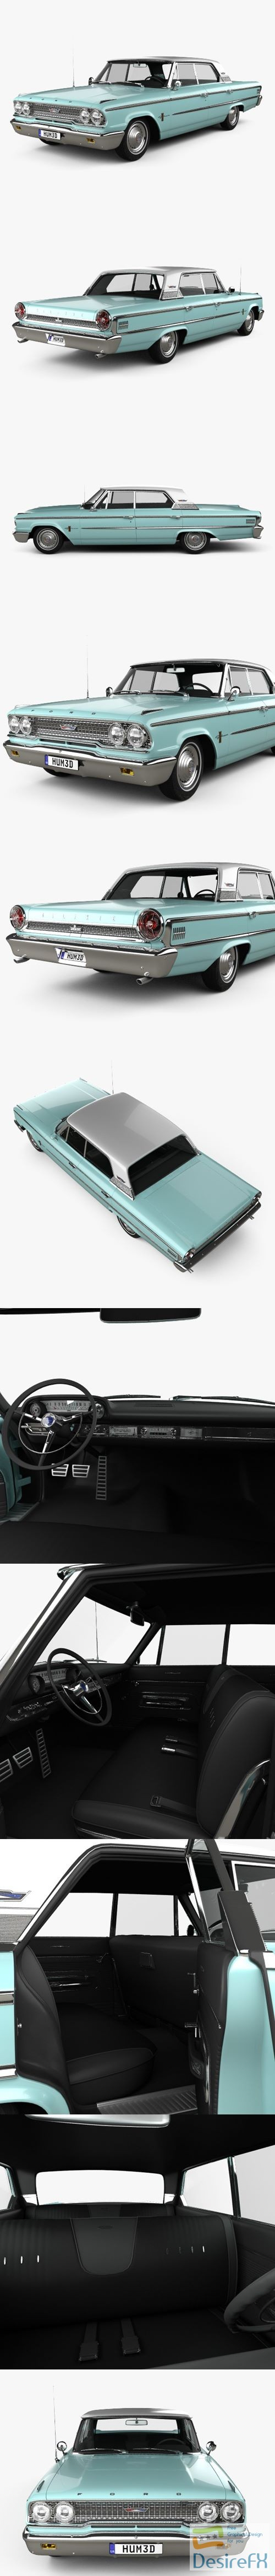 3d-models - Ford Galaxie 500 hardtop with HQ interior 1963 3D Model